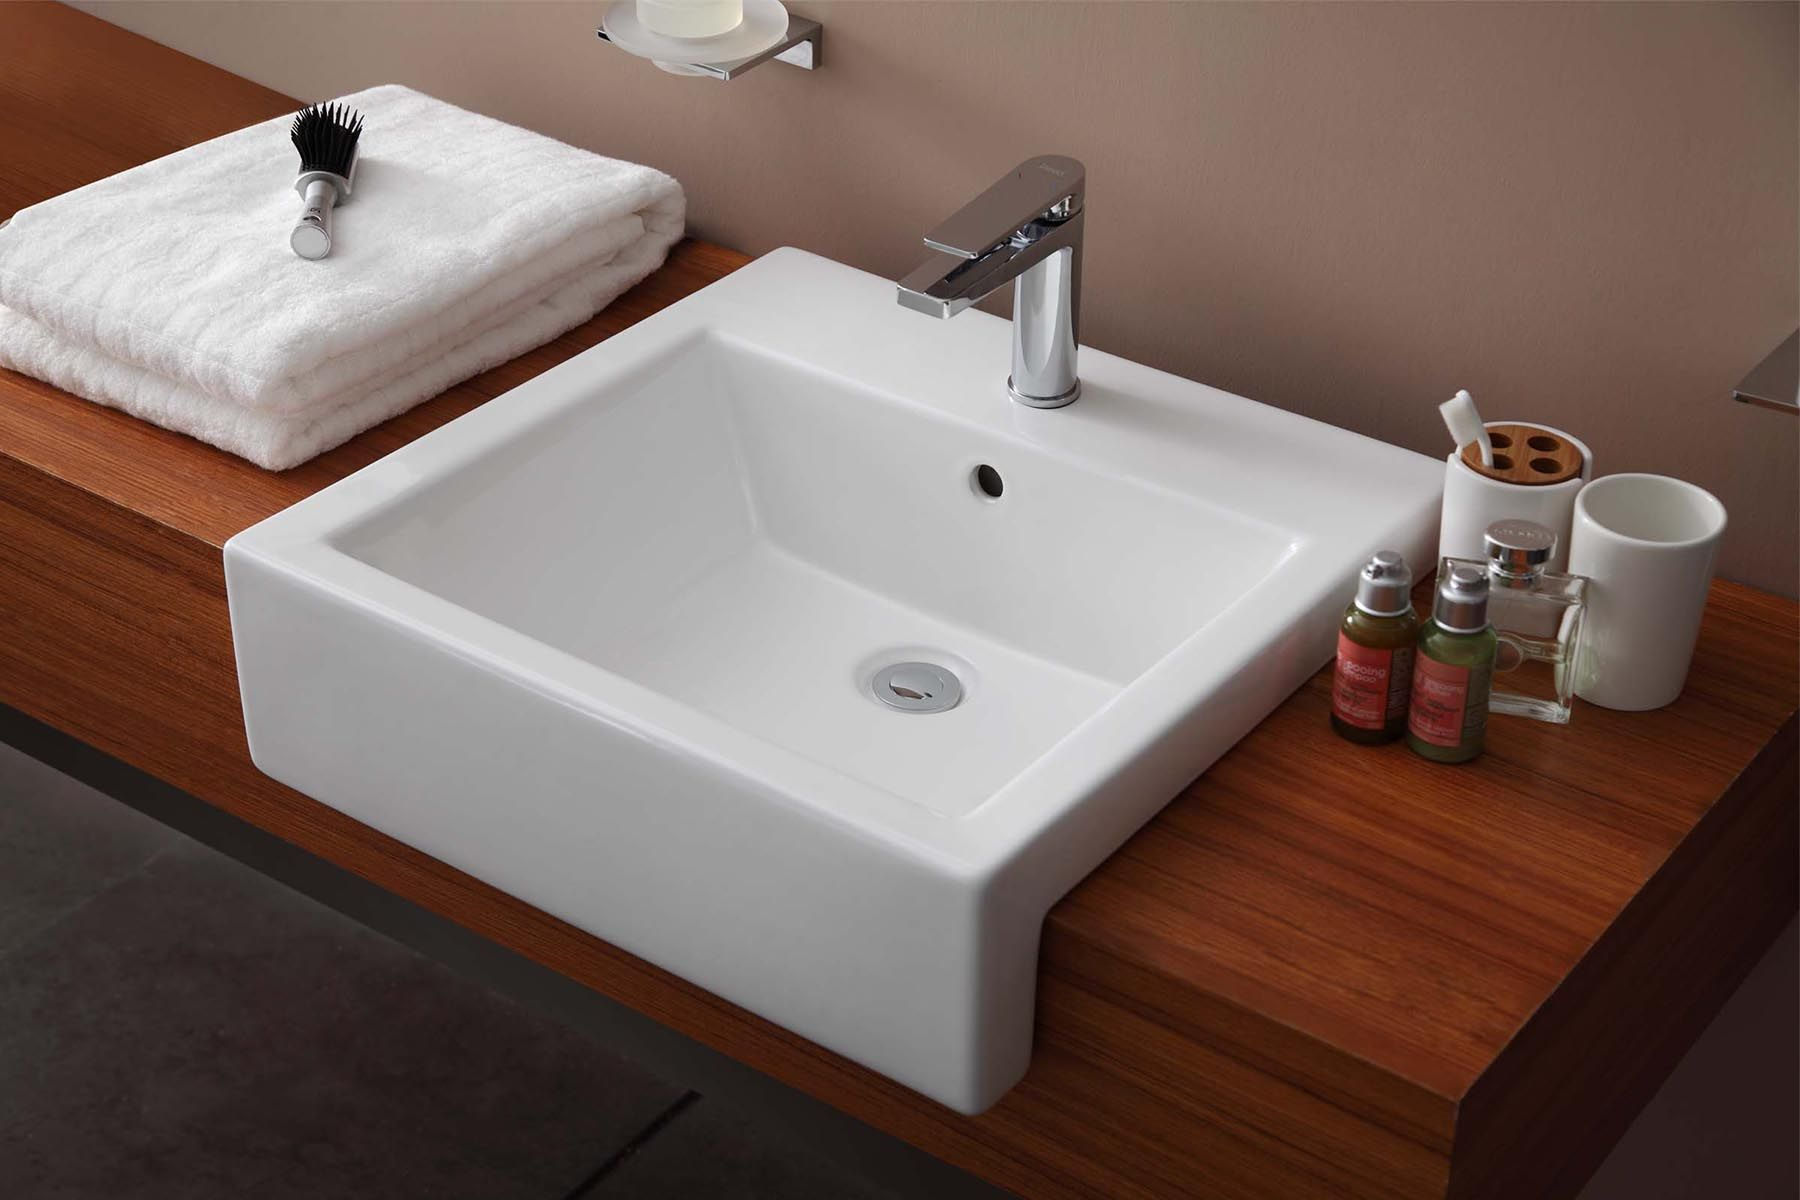 Recessed Bathroom Basins With Images